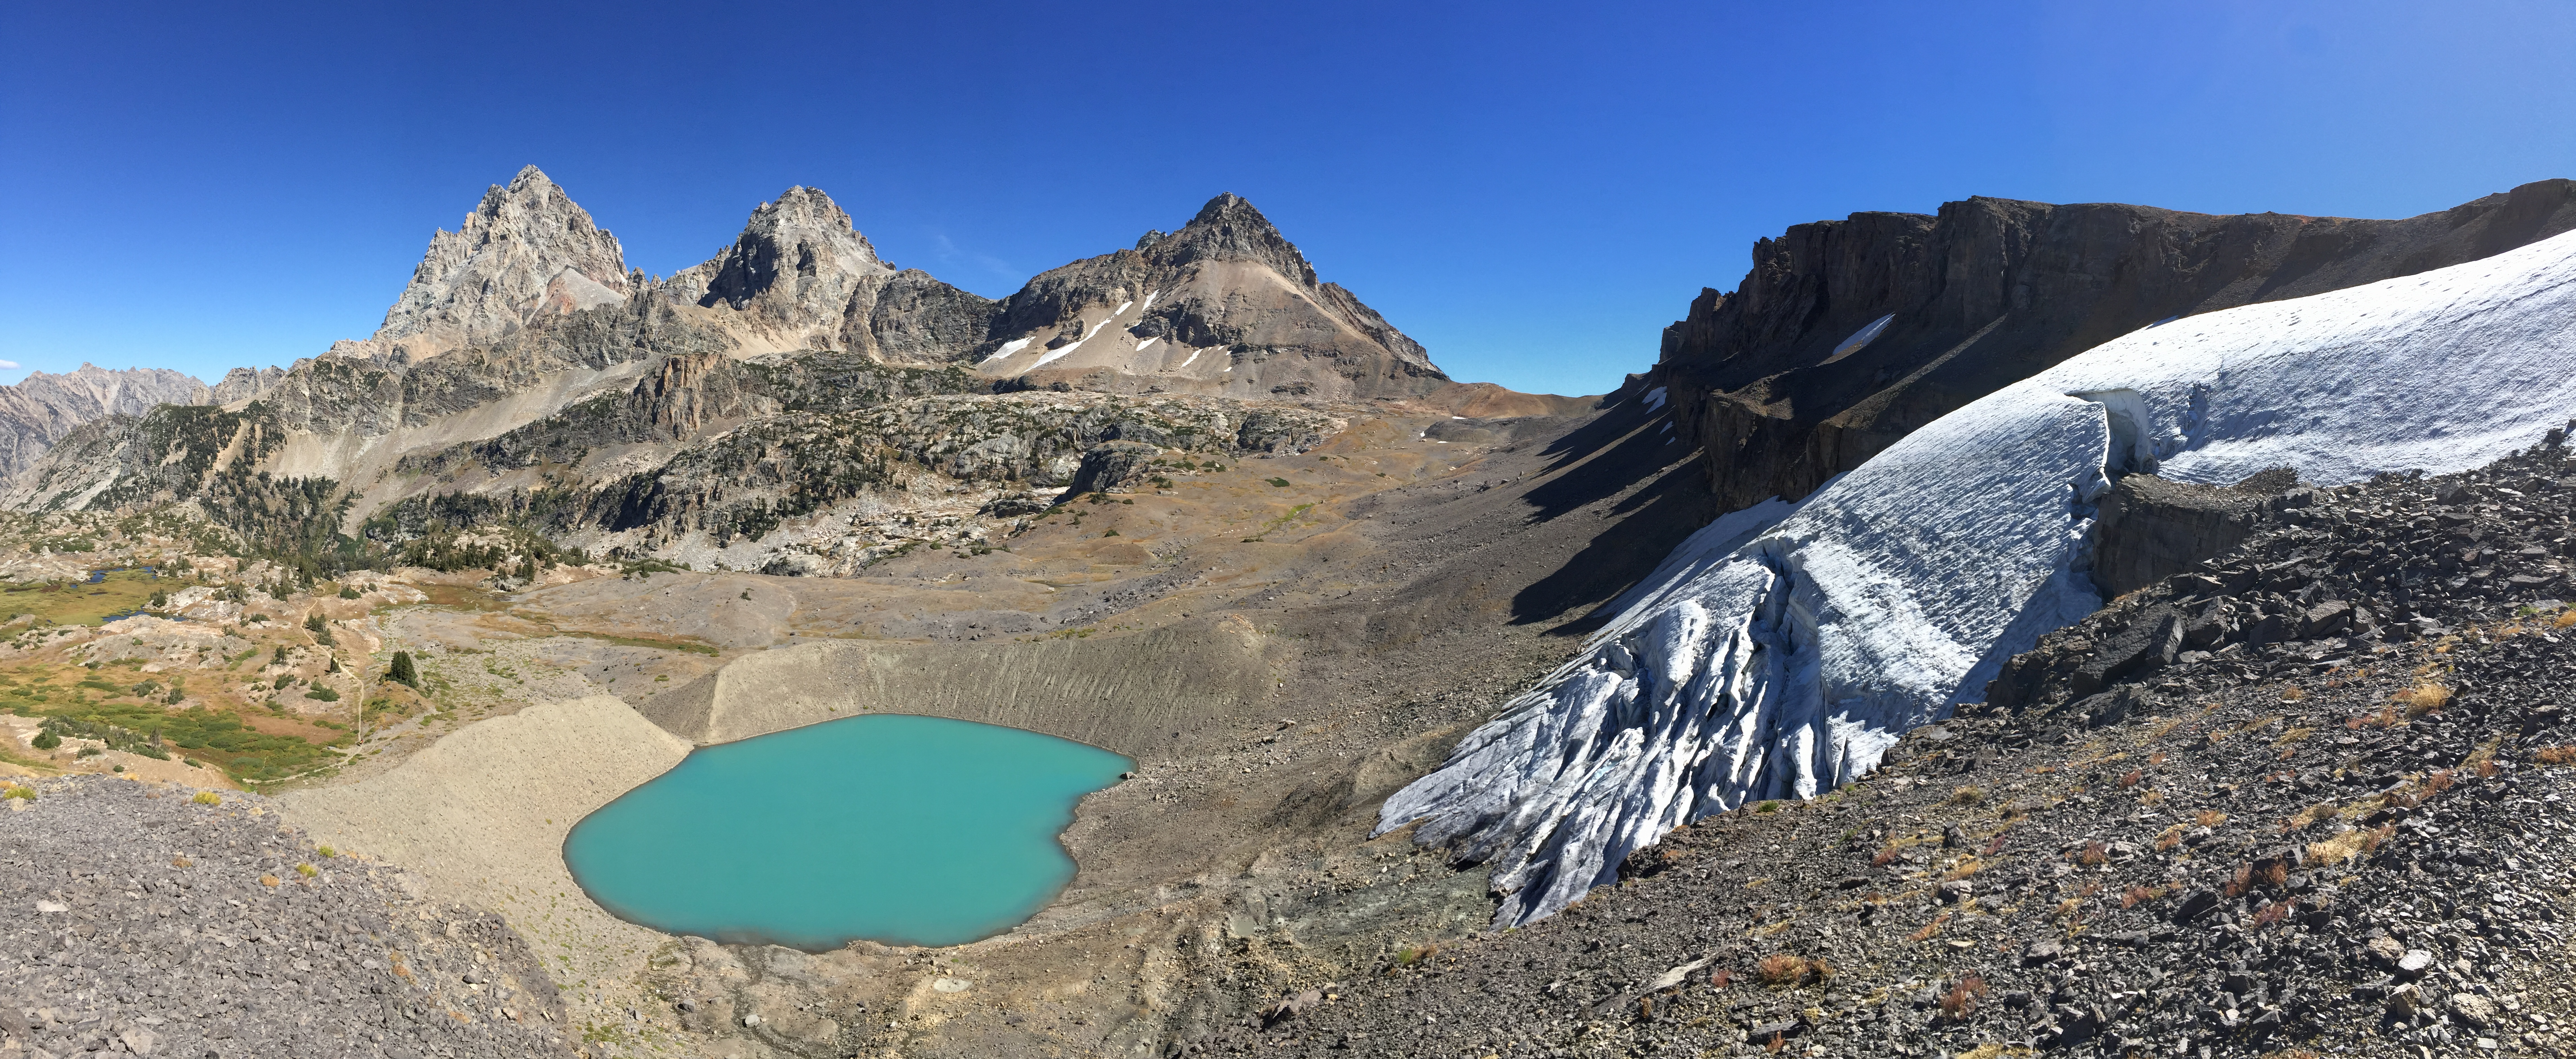 Teton Crest Trail - Hurricane Pass